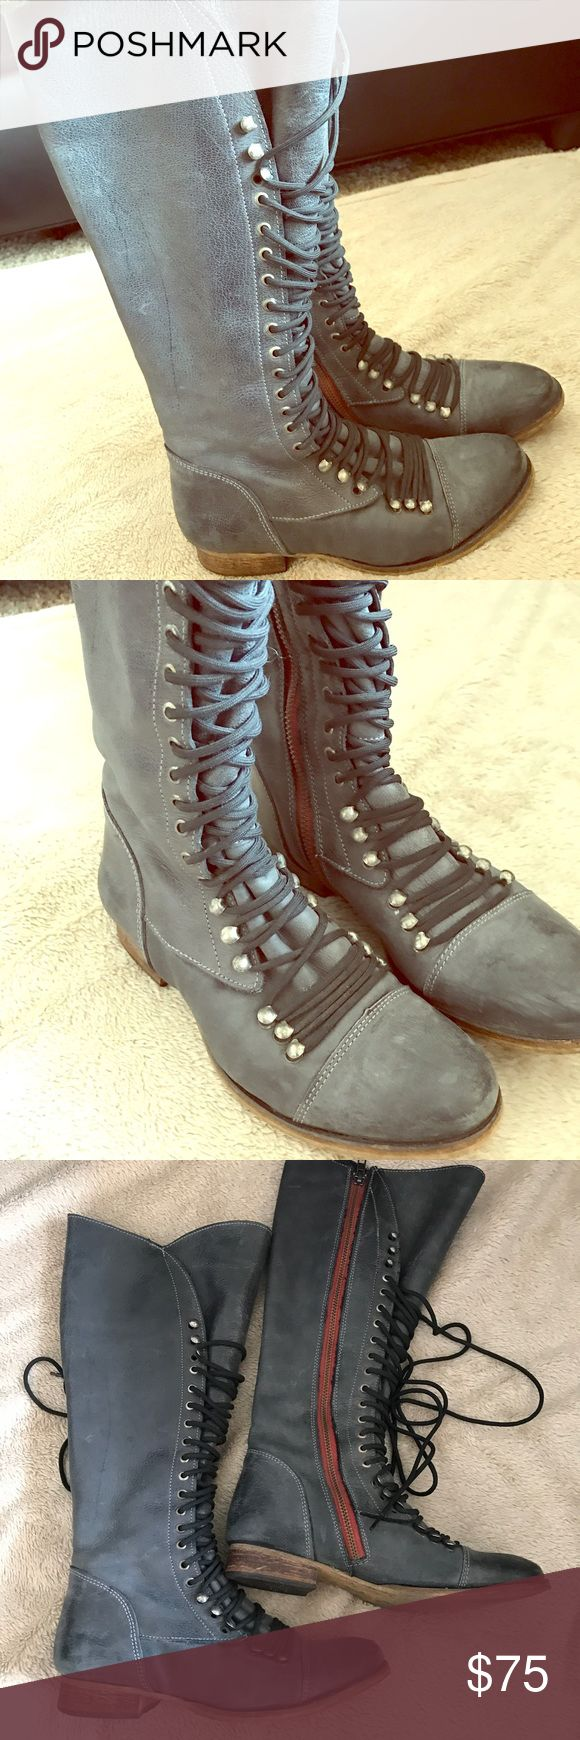 Steve Madden tall lace up boots with side zipper Only worn a handful of times, fits perfectly to calf, great condition Steve Madden Shoes Lace Up Boots